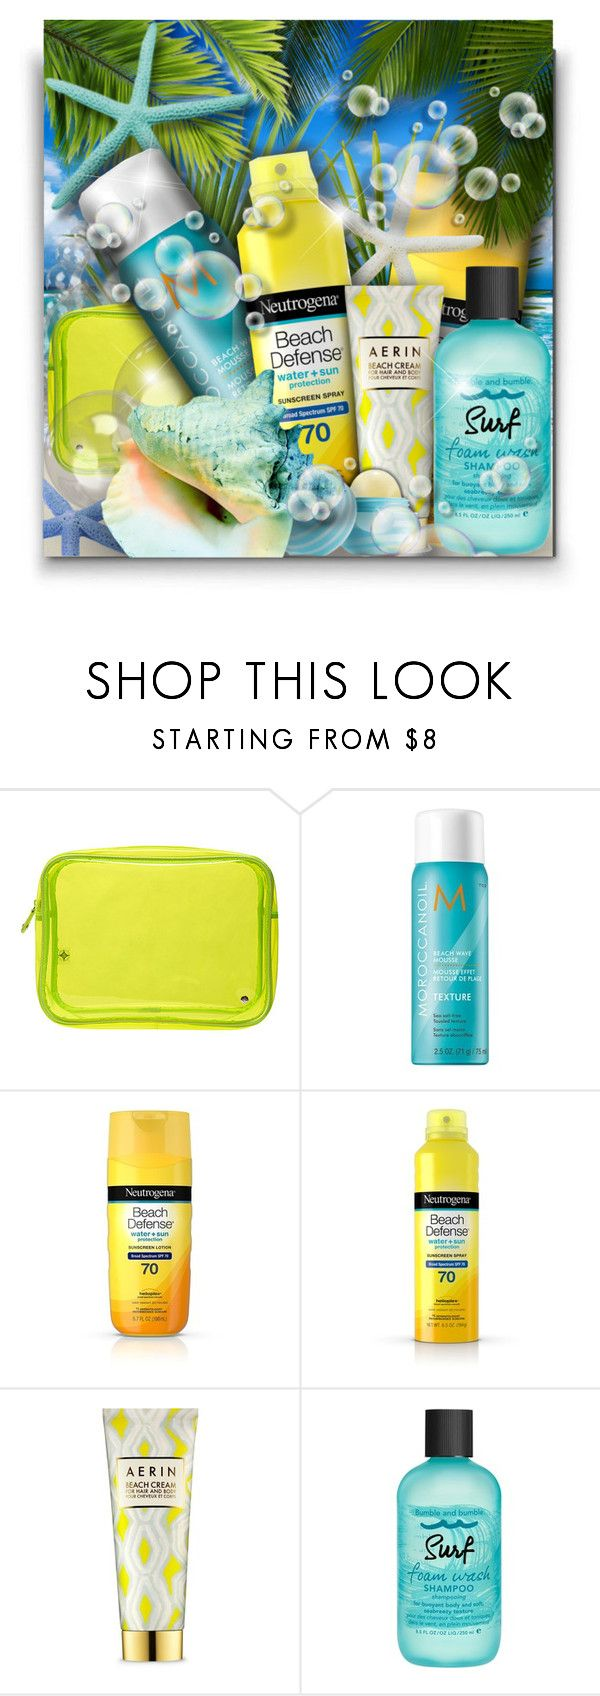 """Beach Beauty! - Contest!"" by asia-12 ❤ liked on Polyvore featuring beauty, Stephanie Johnson, Moroccanoil, Neutrogena, AERIN and Bumble and bumble"